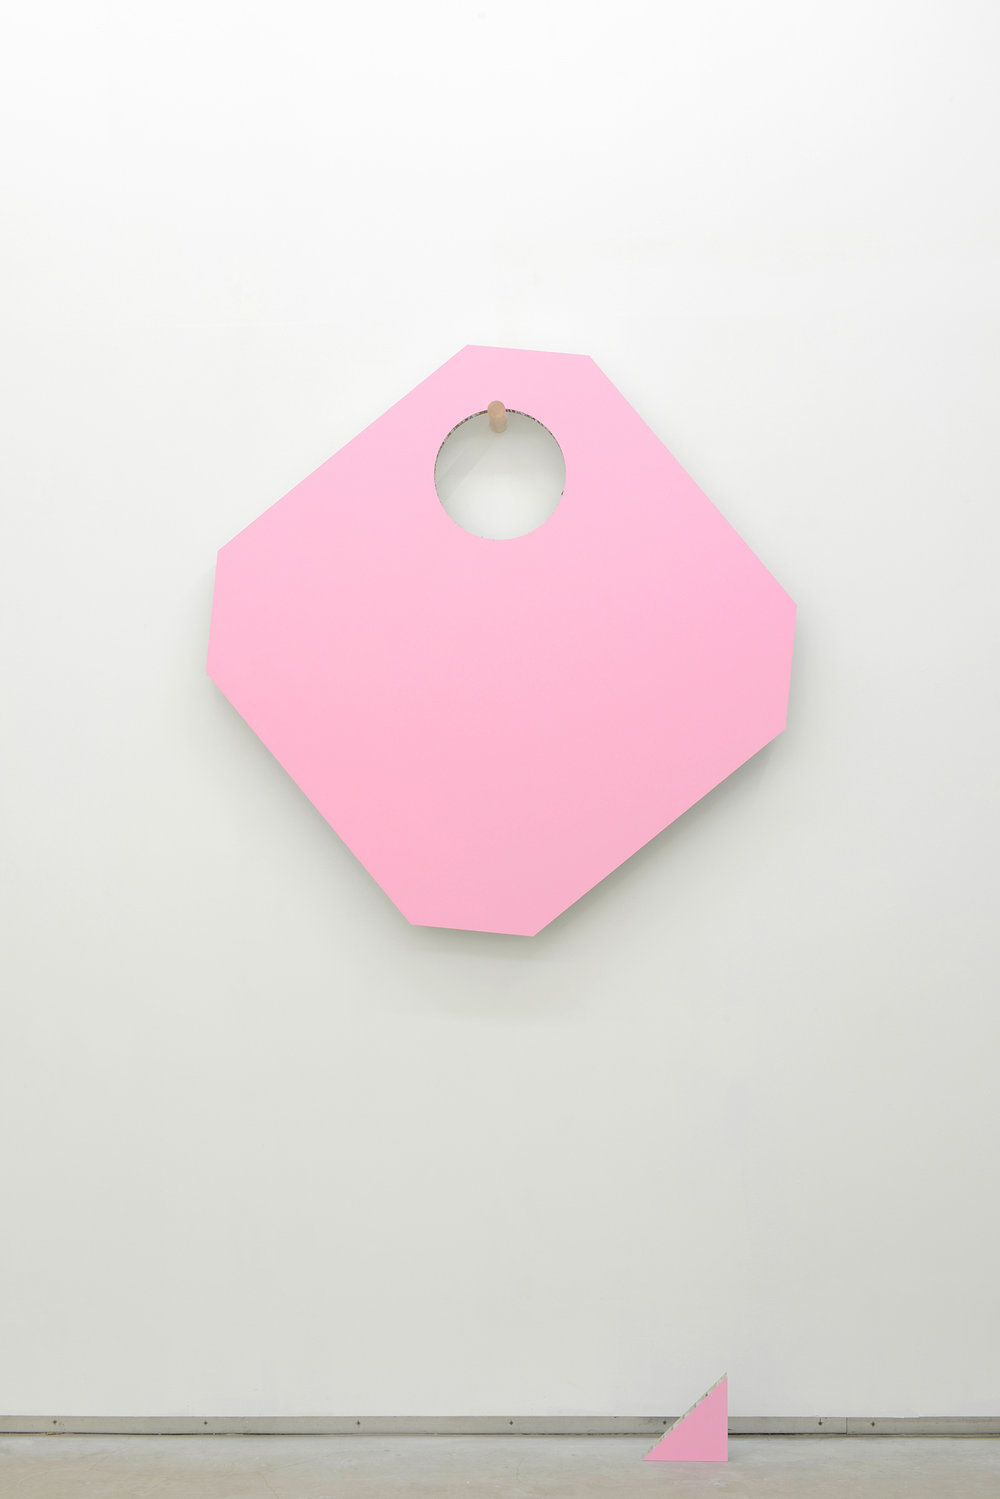 Jean-Pascal Flavien,  statement house - Rose! There will be so much room , 2014, painted aluminium, painted cardboard, wood, 113 x 113 cm